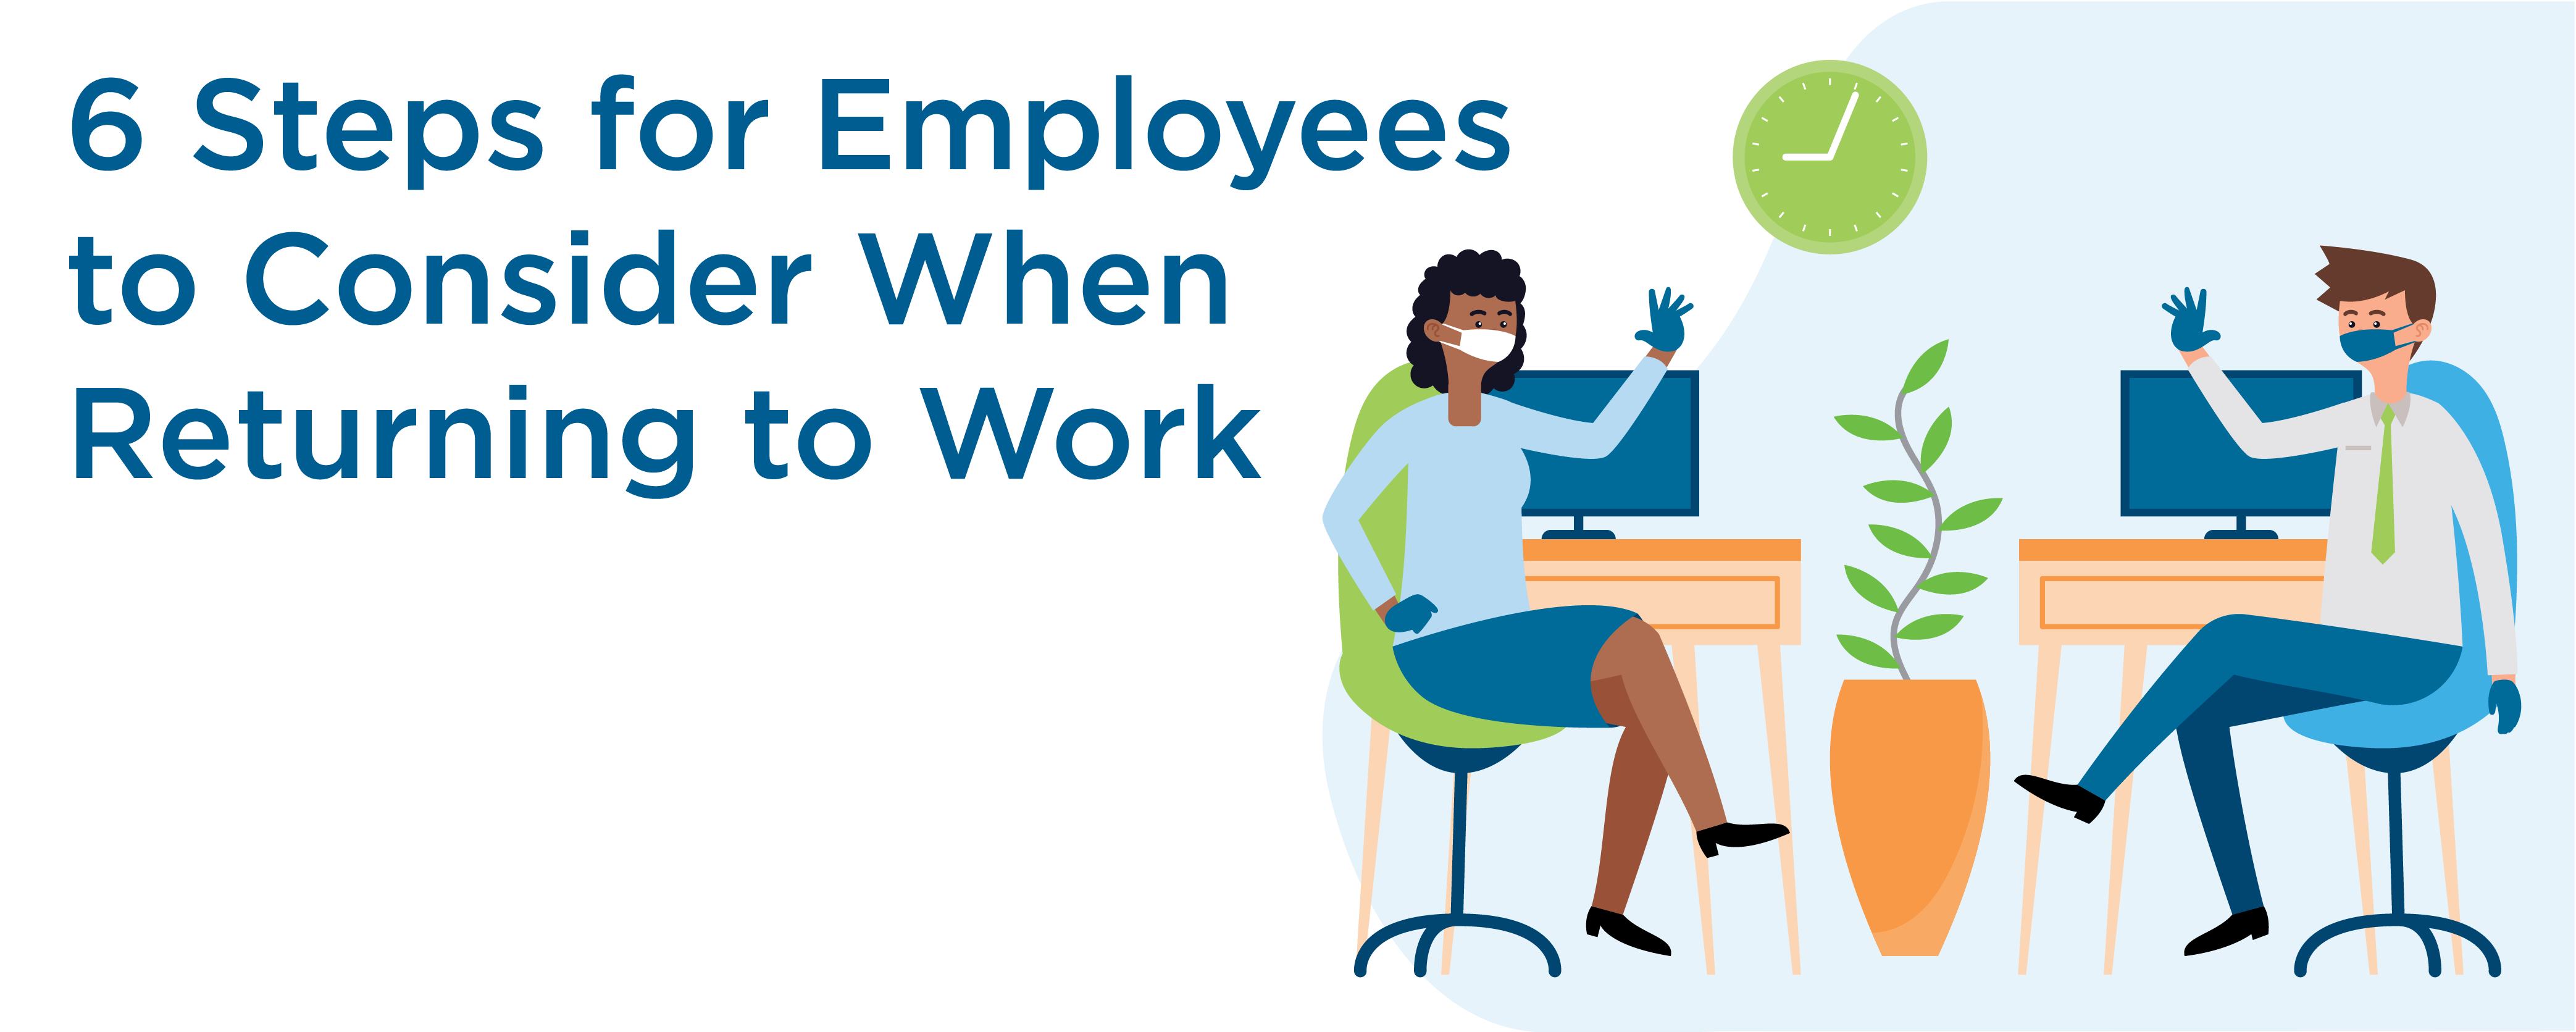 6 steps for employees to consider when returning to work.